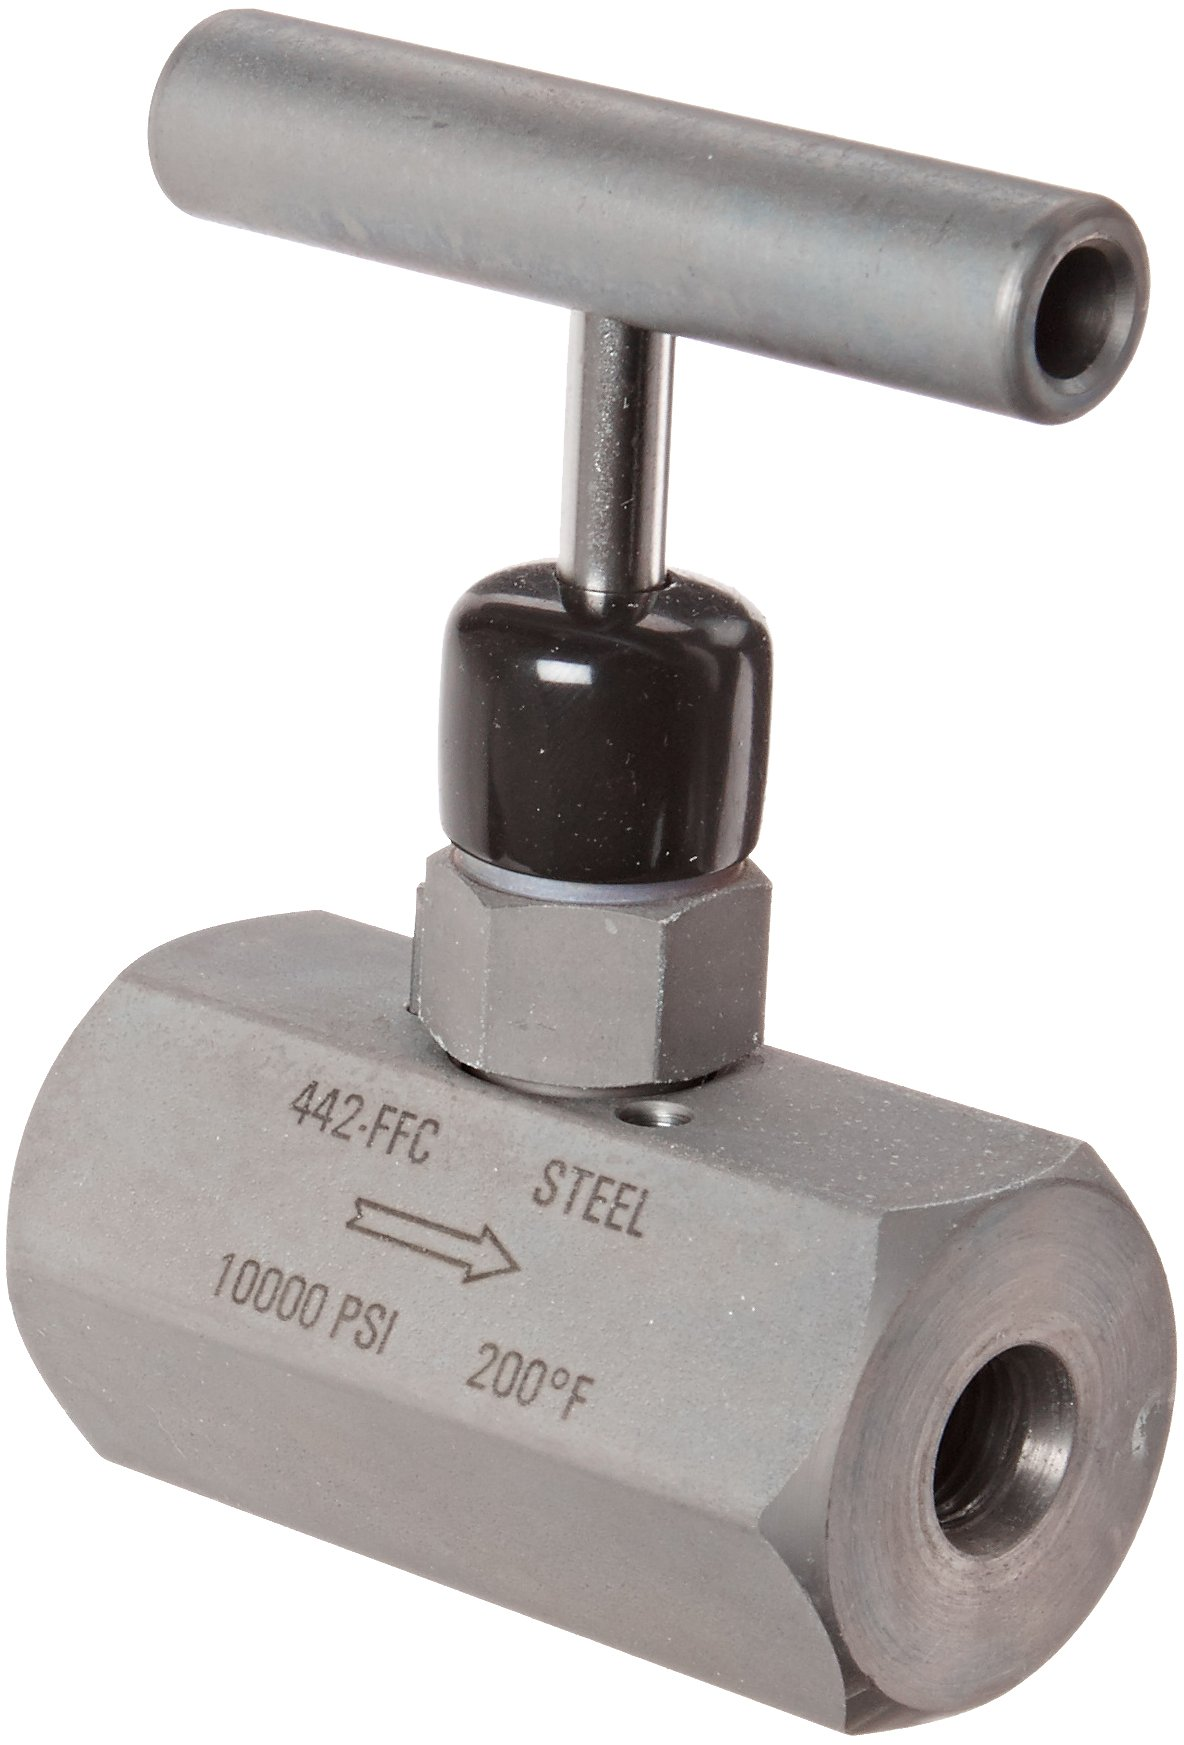 NOSHOK 400 Series 316 Stainless Steel Hard Seat Needle Valve, 1-1/2'' NPT Male x 1-1/2'' NPT Female, 10000 psi Pressure Range